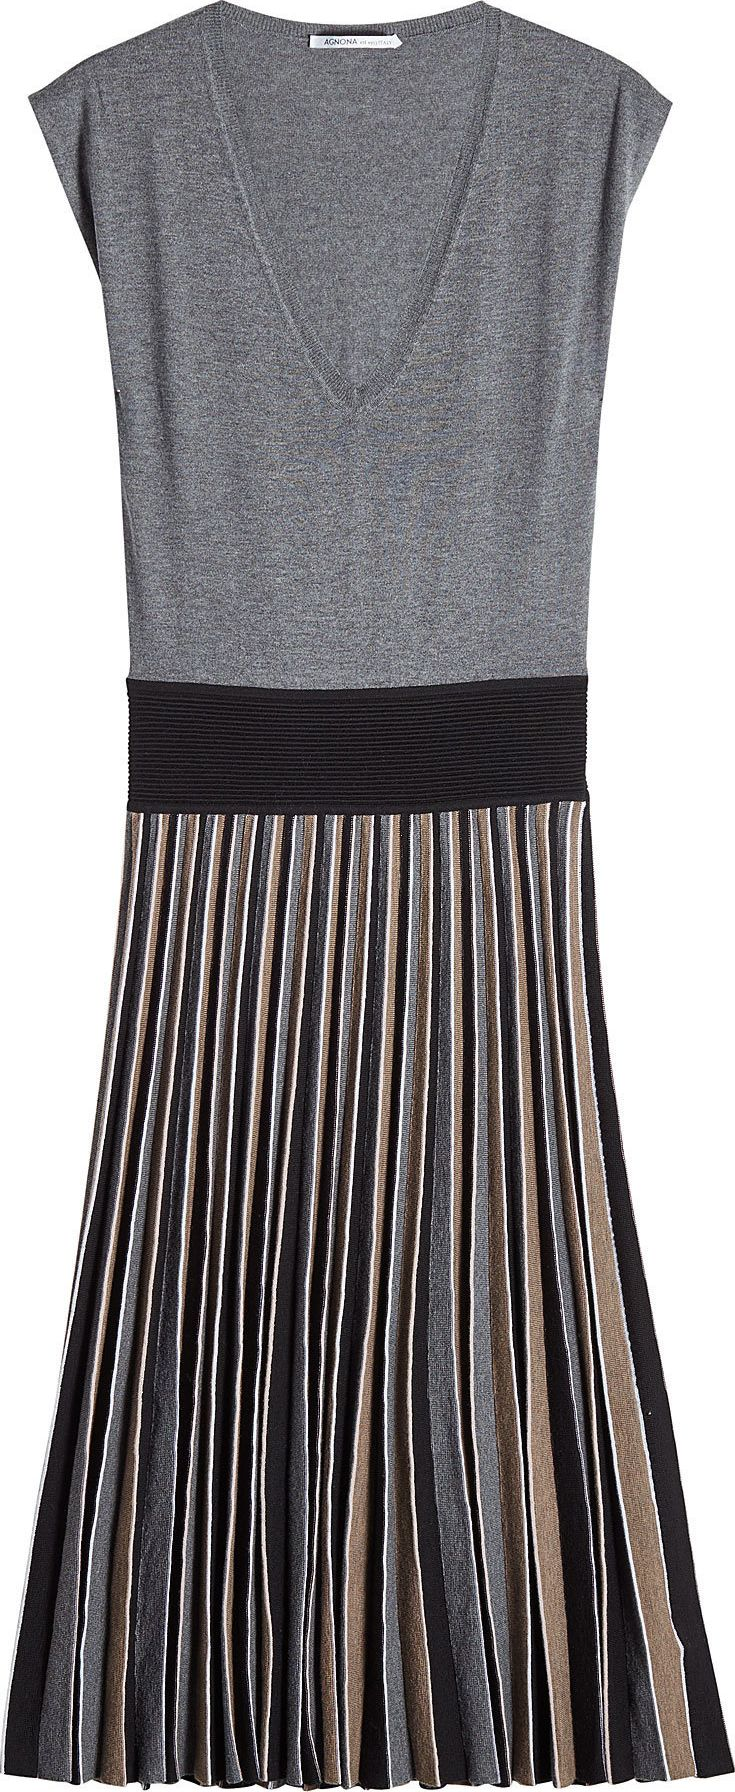 Agnona - Wool Dress with Pleated Skirt